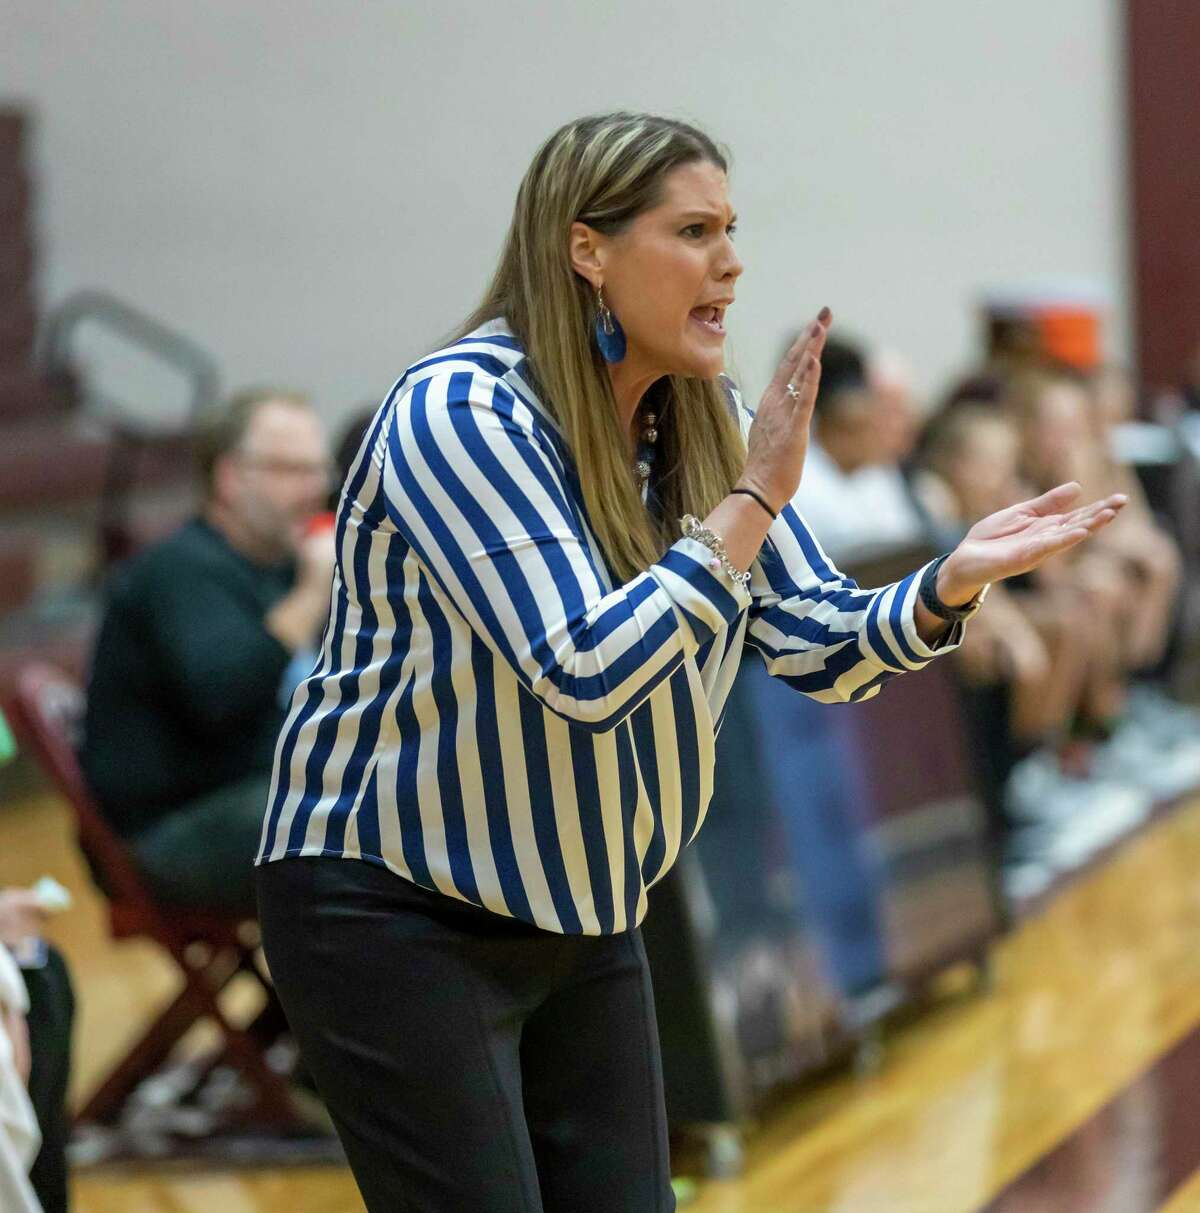 New Caney head coach Tricia Mize reacts after New Caney scores in a Region III-5A bi-district girls basketball playoff against A&M Consolidated high school during the second half at Magnolia High School in Magnolia, Tuesday, Feb. 18, 2020.